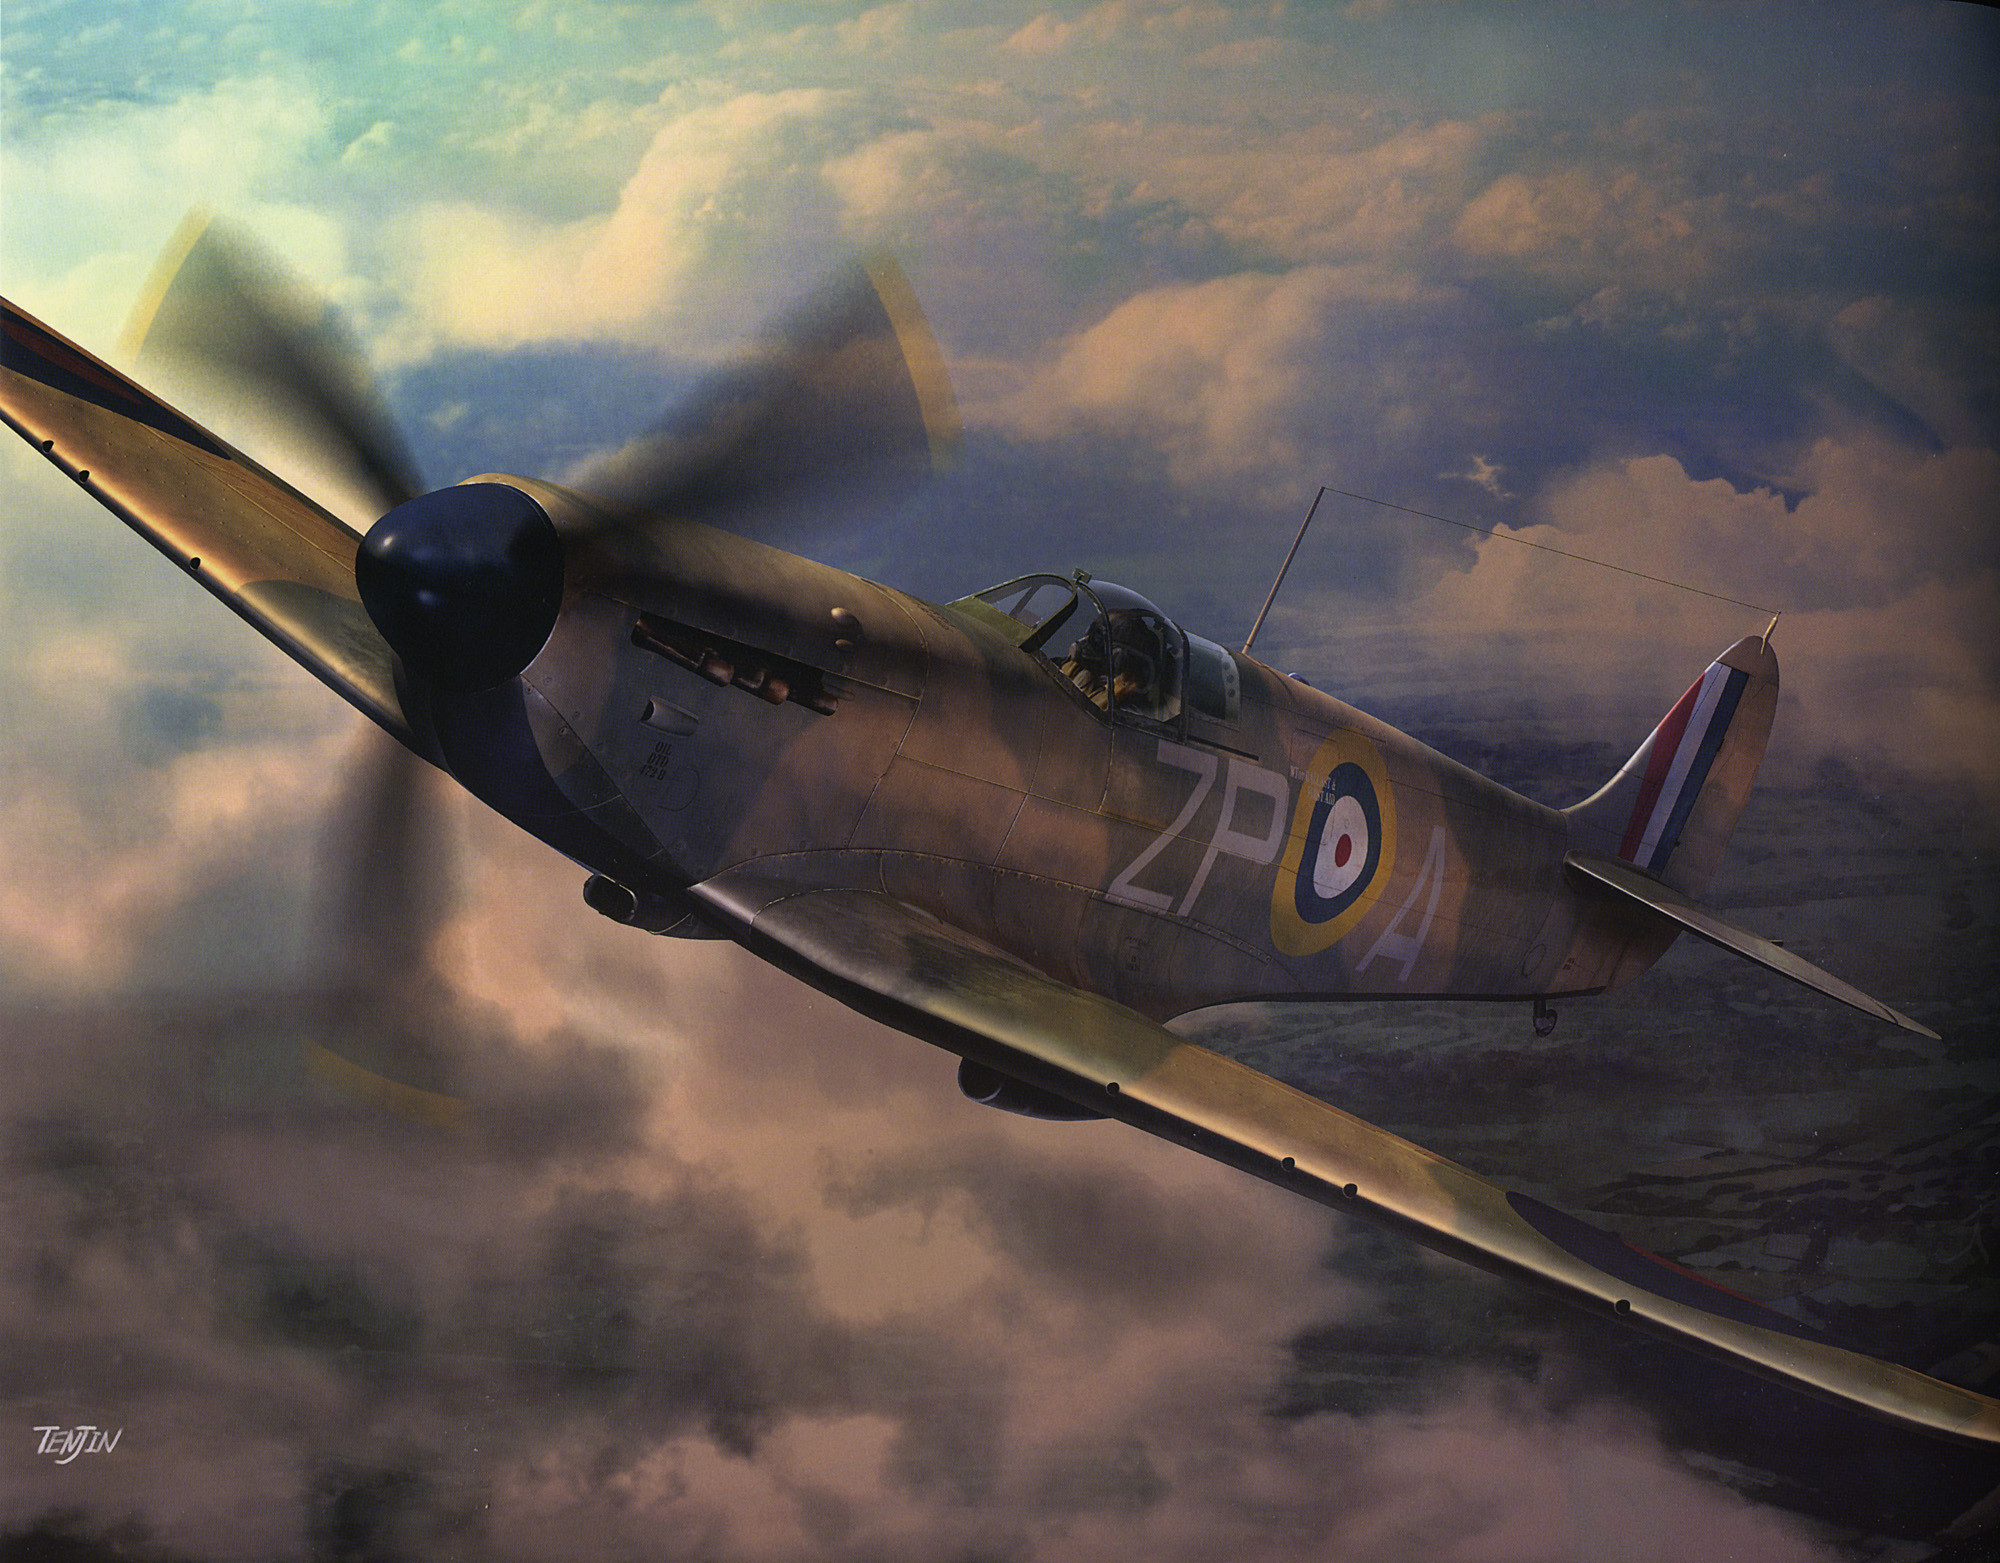 2000x1563  Spitfire Backgrounds, Spitfire Wallpapers - Stanko Bleasdale